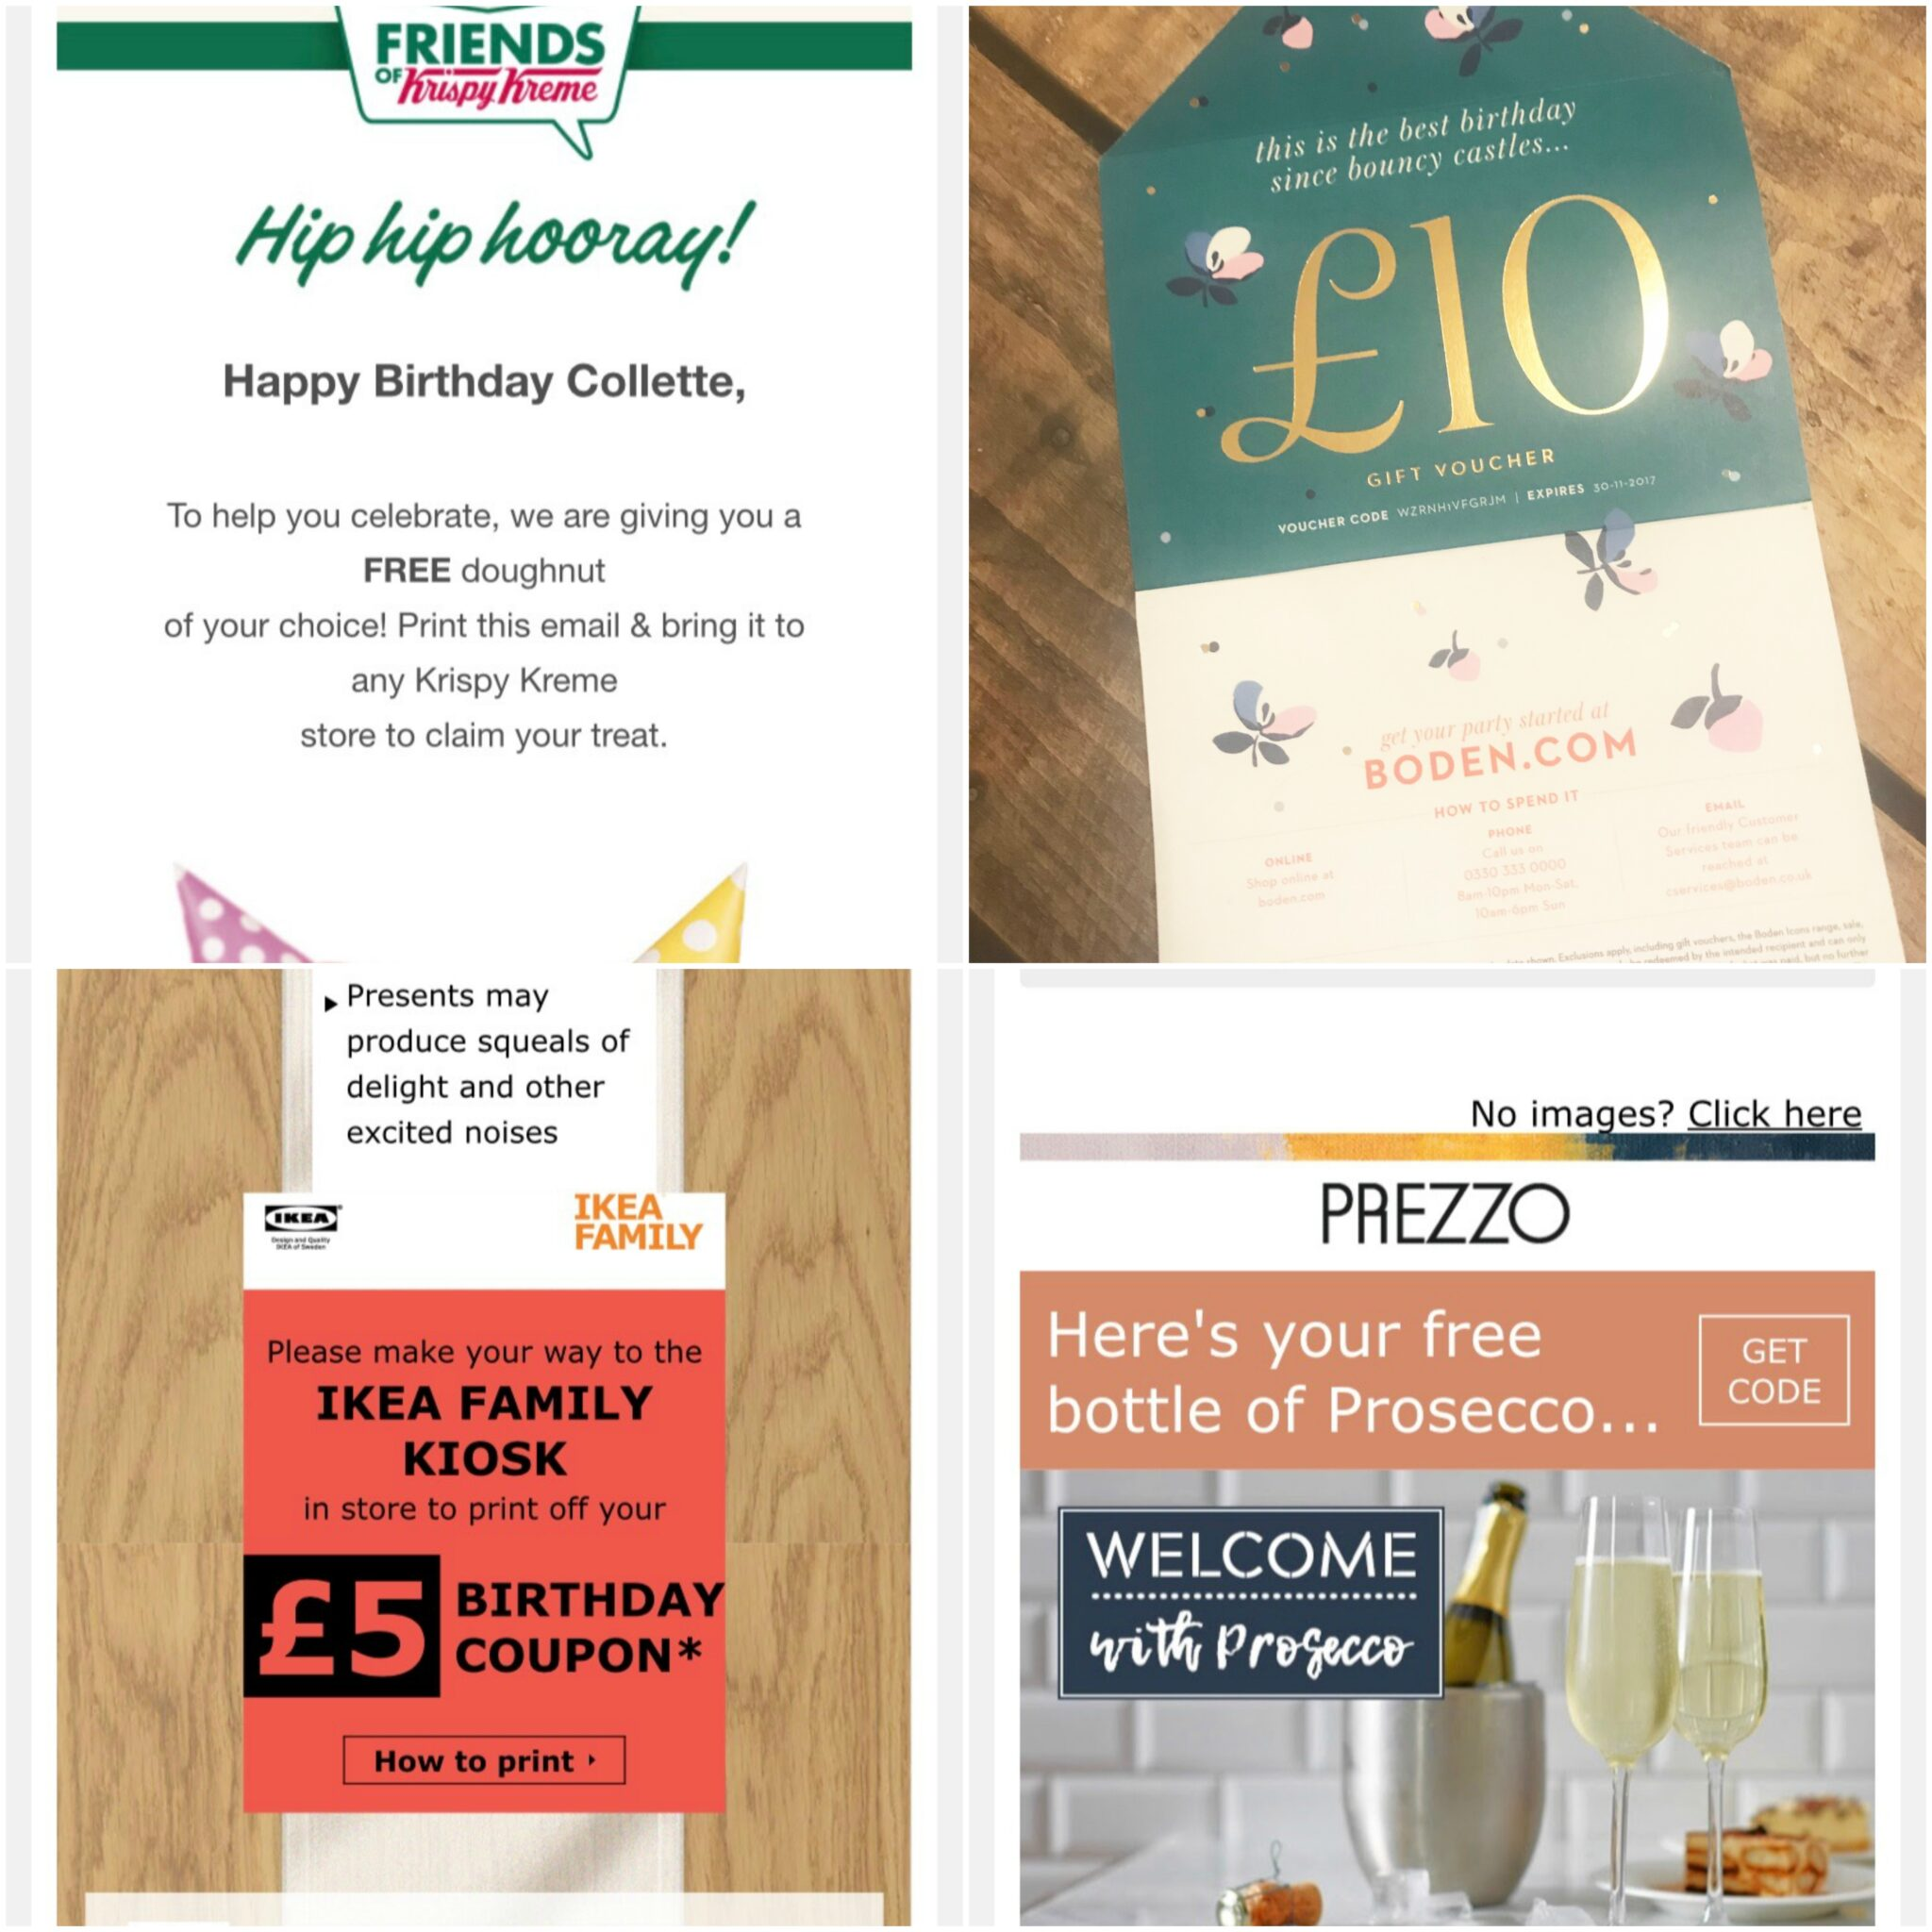 More birthday freebies